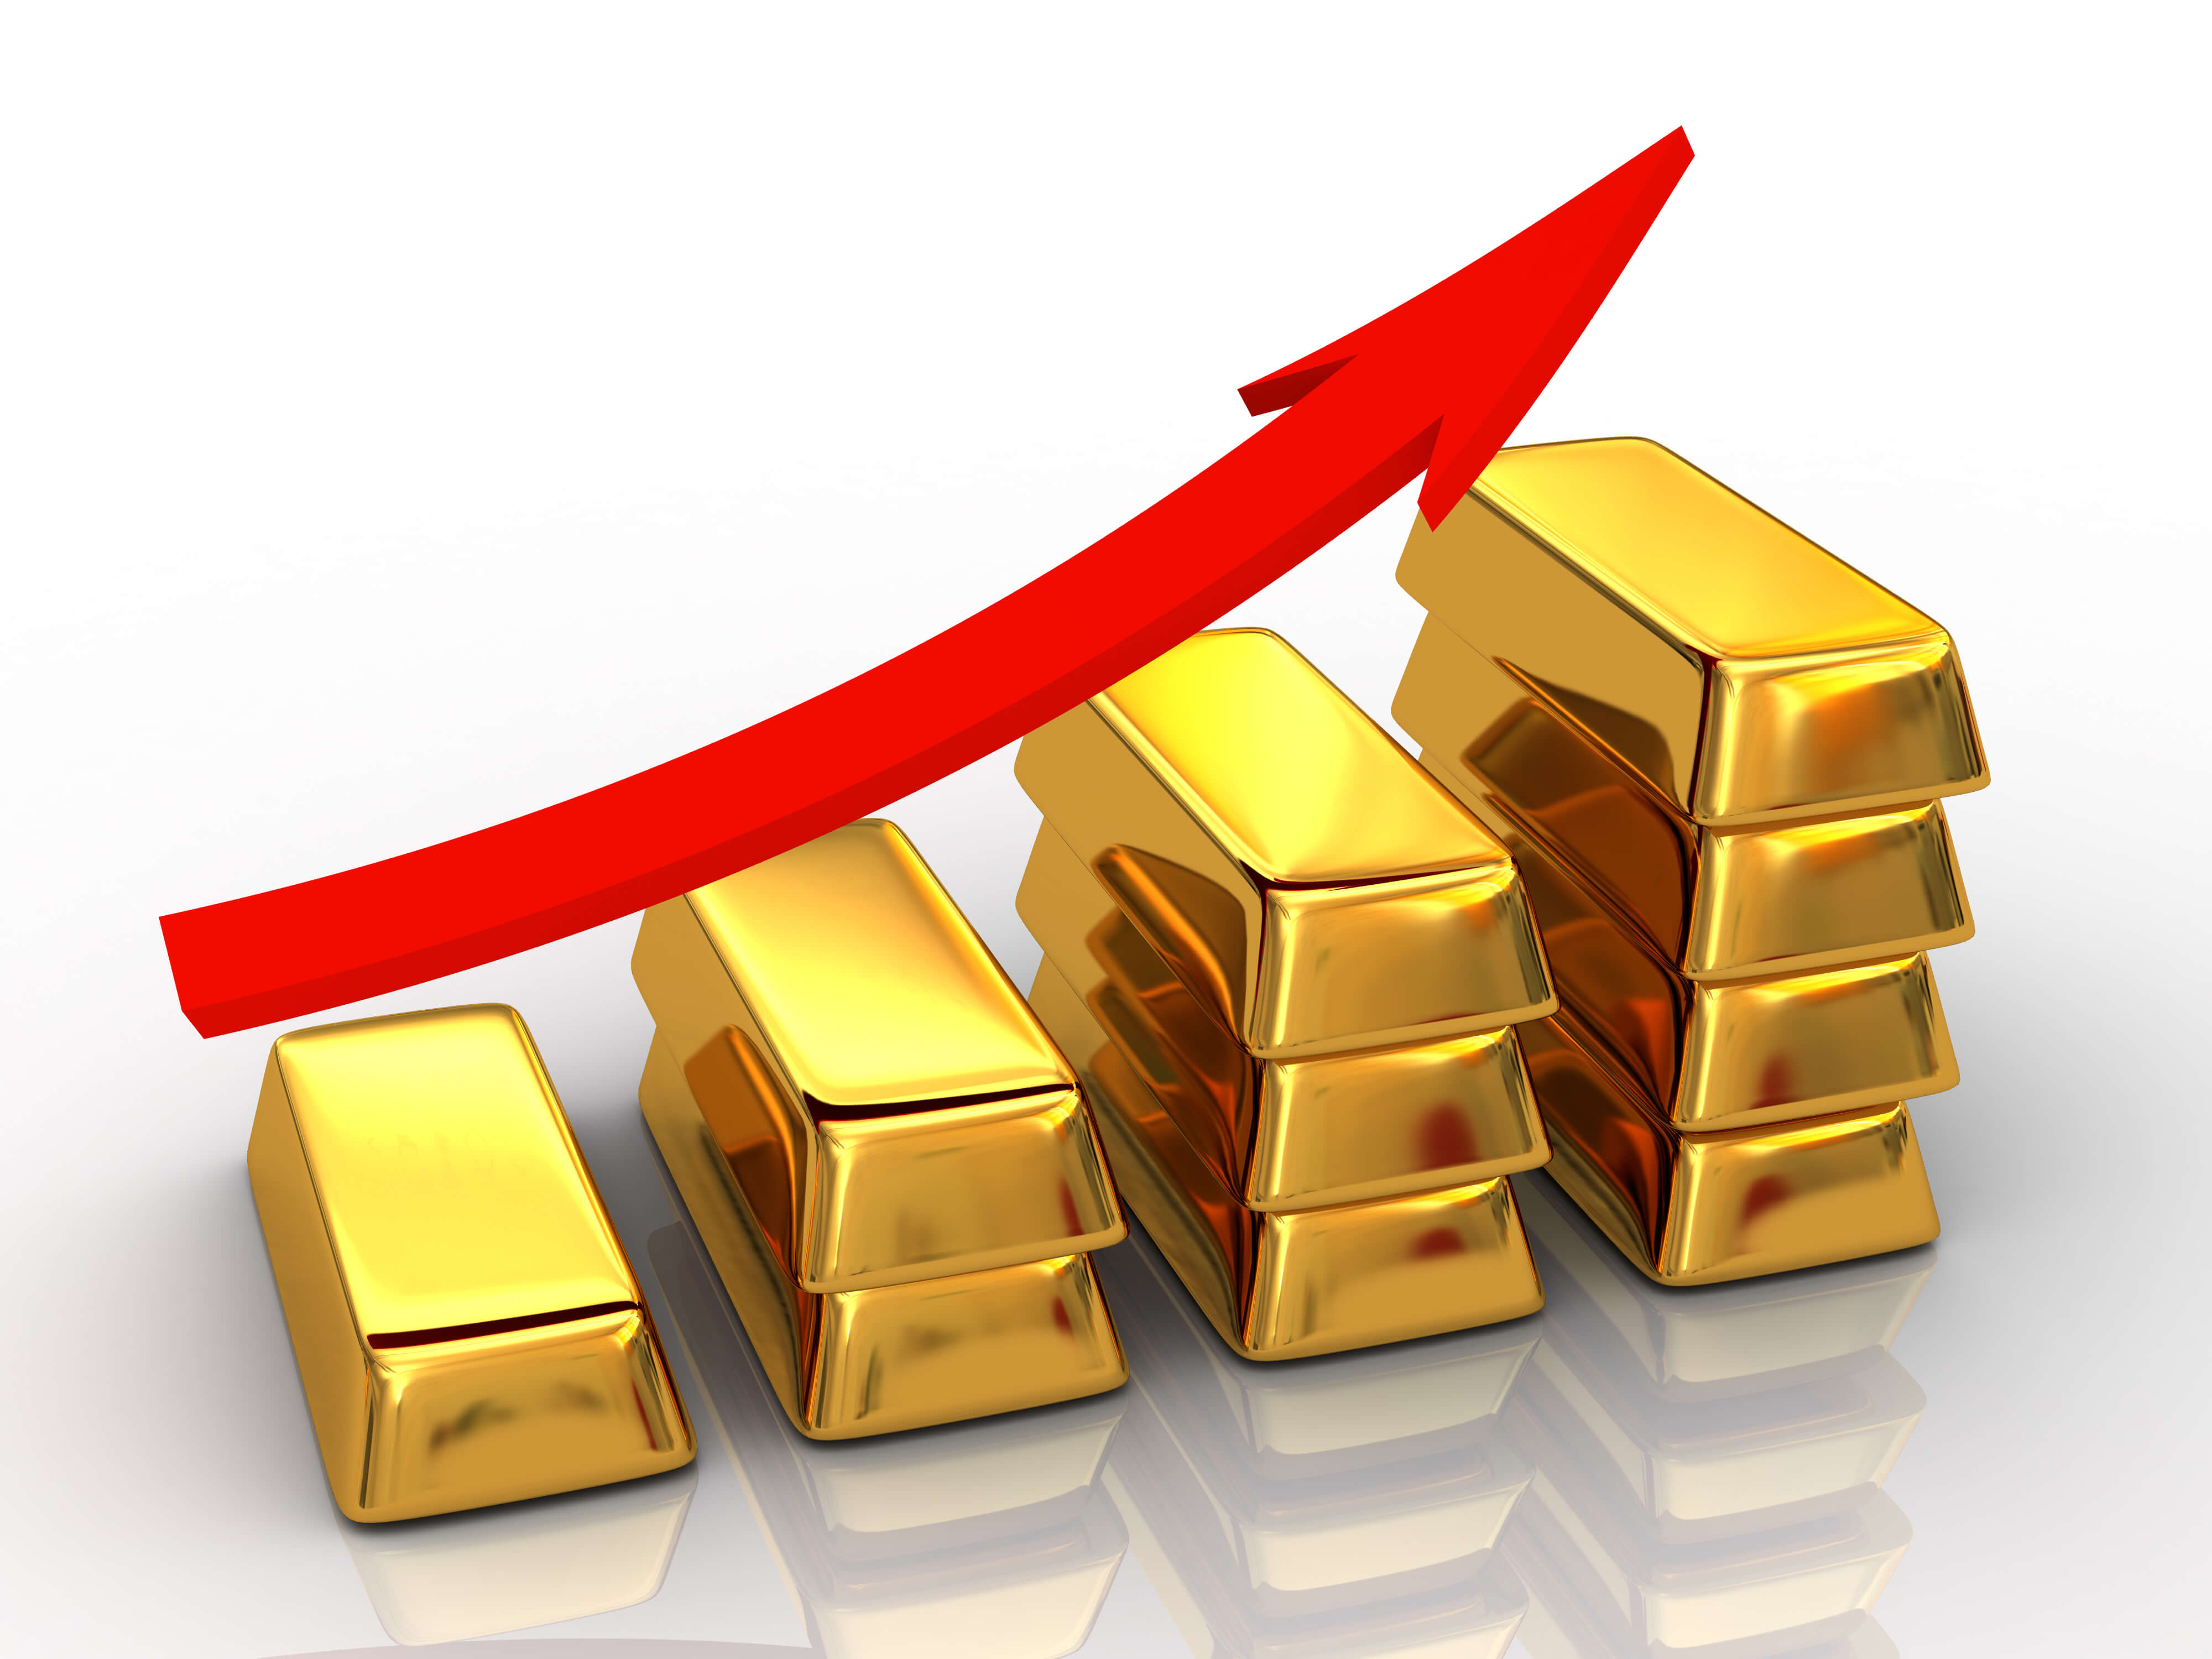 Spot price of gold and interest rate cut